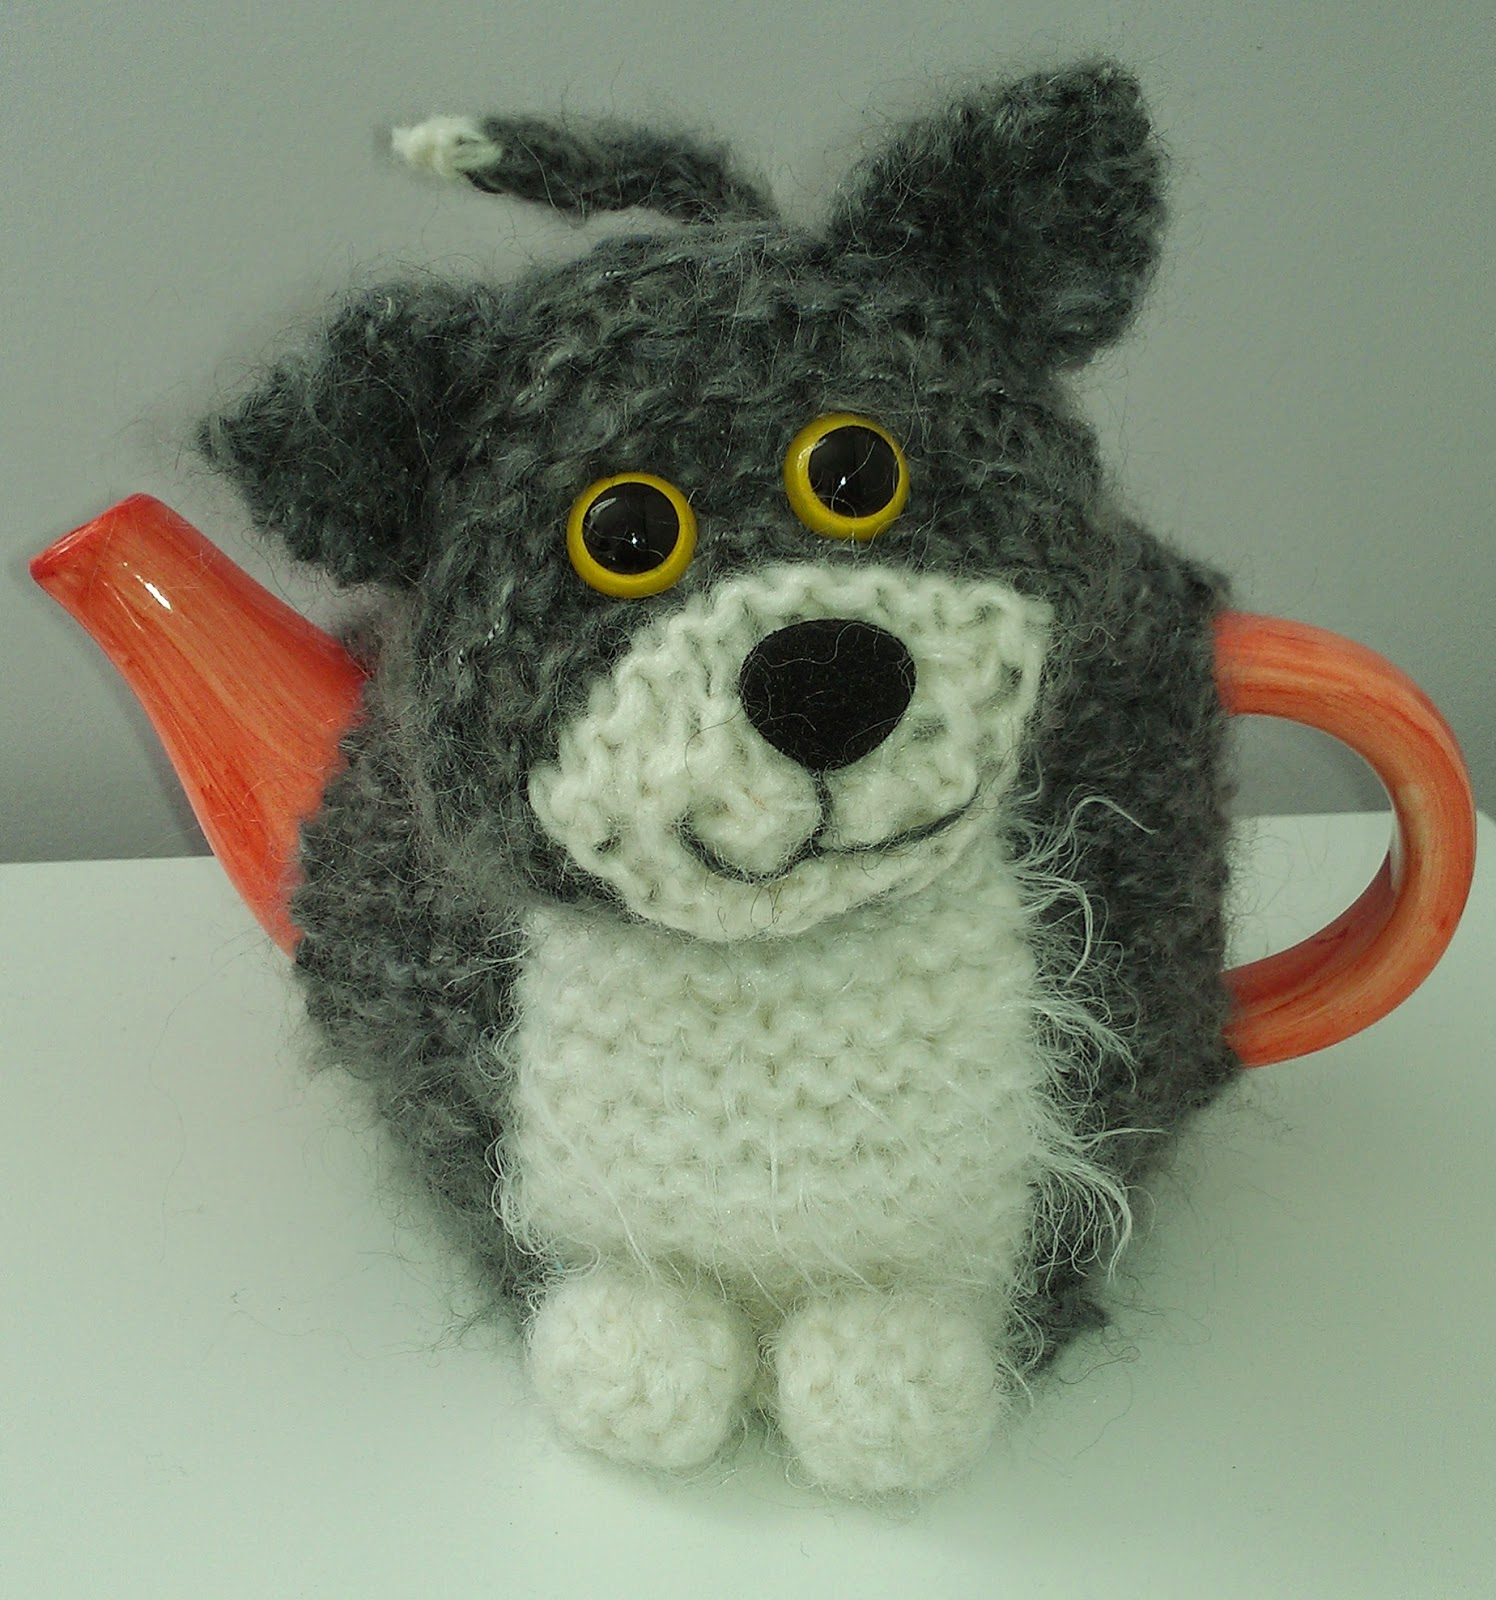 Small Dog Knitting Patterns : Craft a cure for cancer free tea cosy patterns: Animal tea cosies